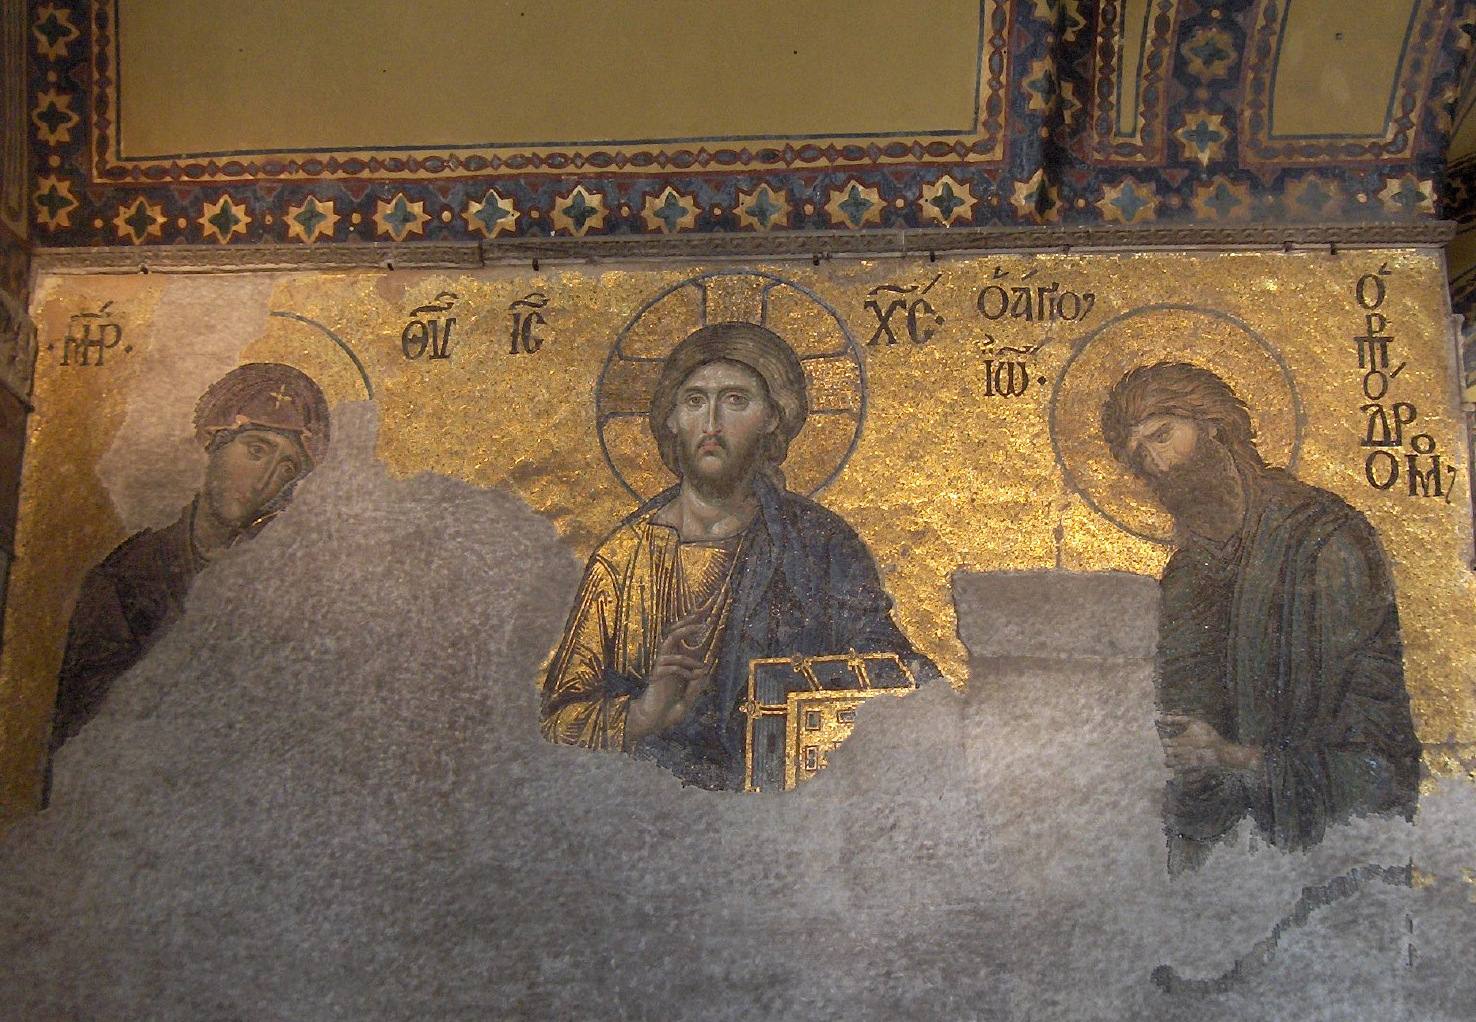 The De sis mosaic with Christ as ruler